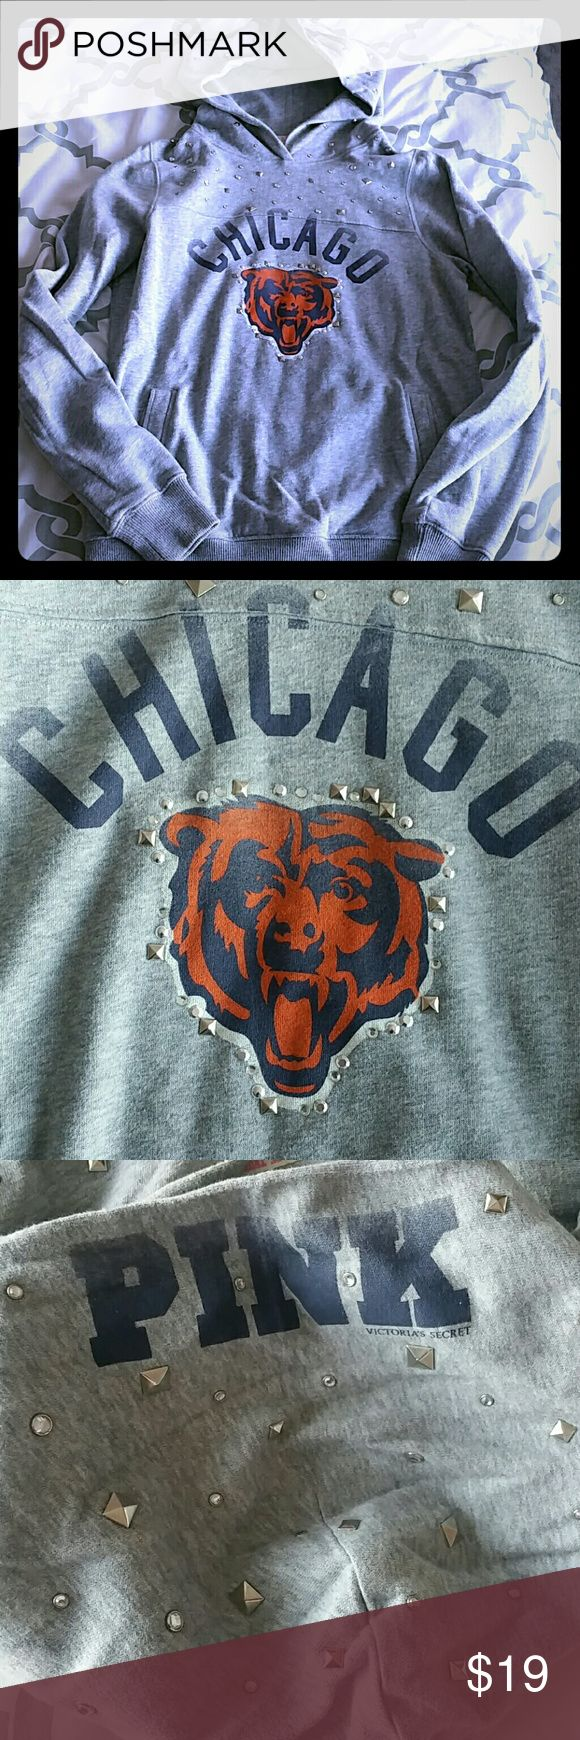 PINK Chicago Bears hoodie! Awesome Chicago Bears hoodie! Covered in rhinestones and studs! Show your Bears pride in the coolest way possible! You will be the star of the game in this hoodie! Worn with love! Happy Shopping! PINK Victoria's Secret Tops Sweatshirts & Hoodies